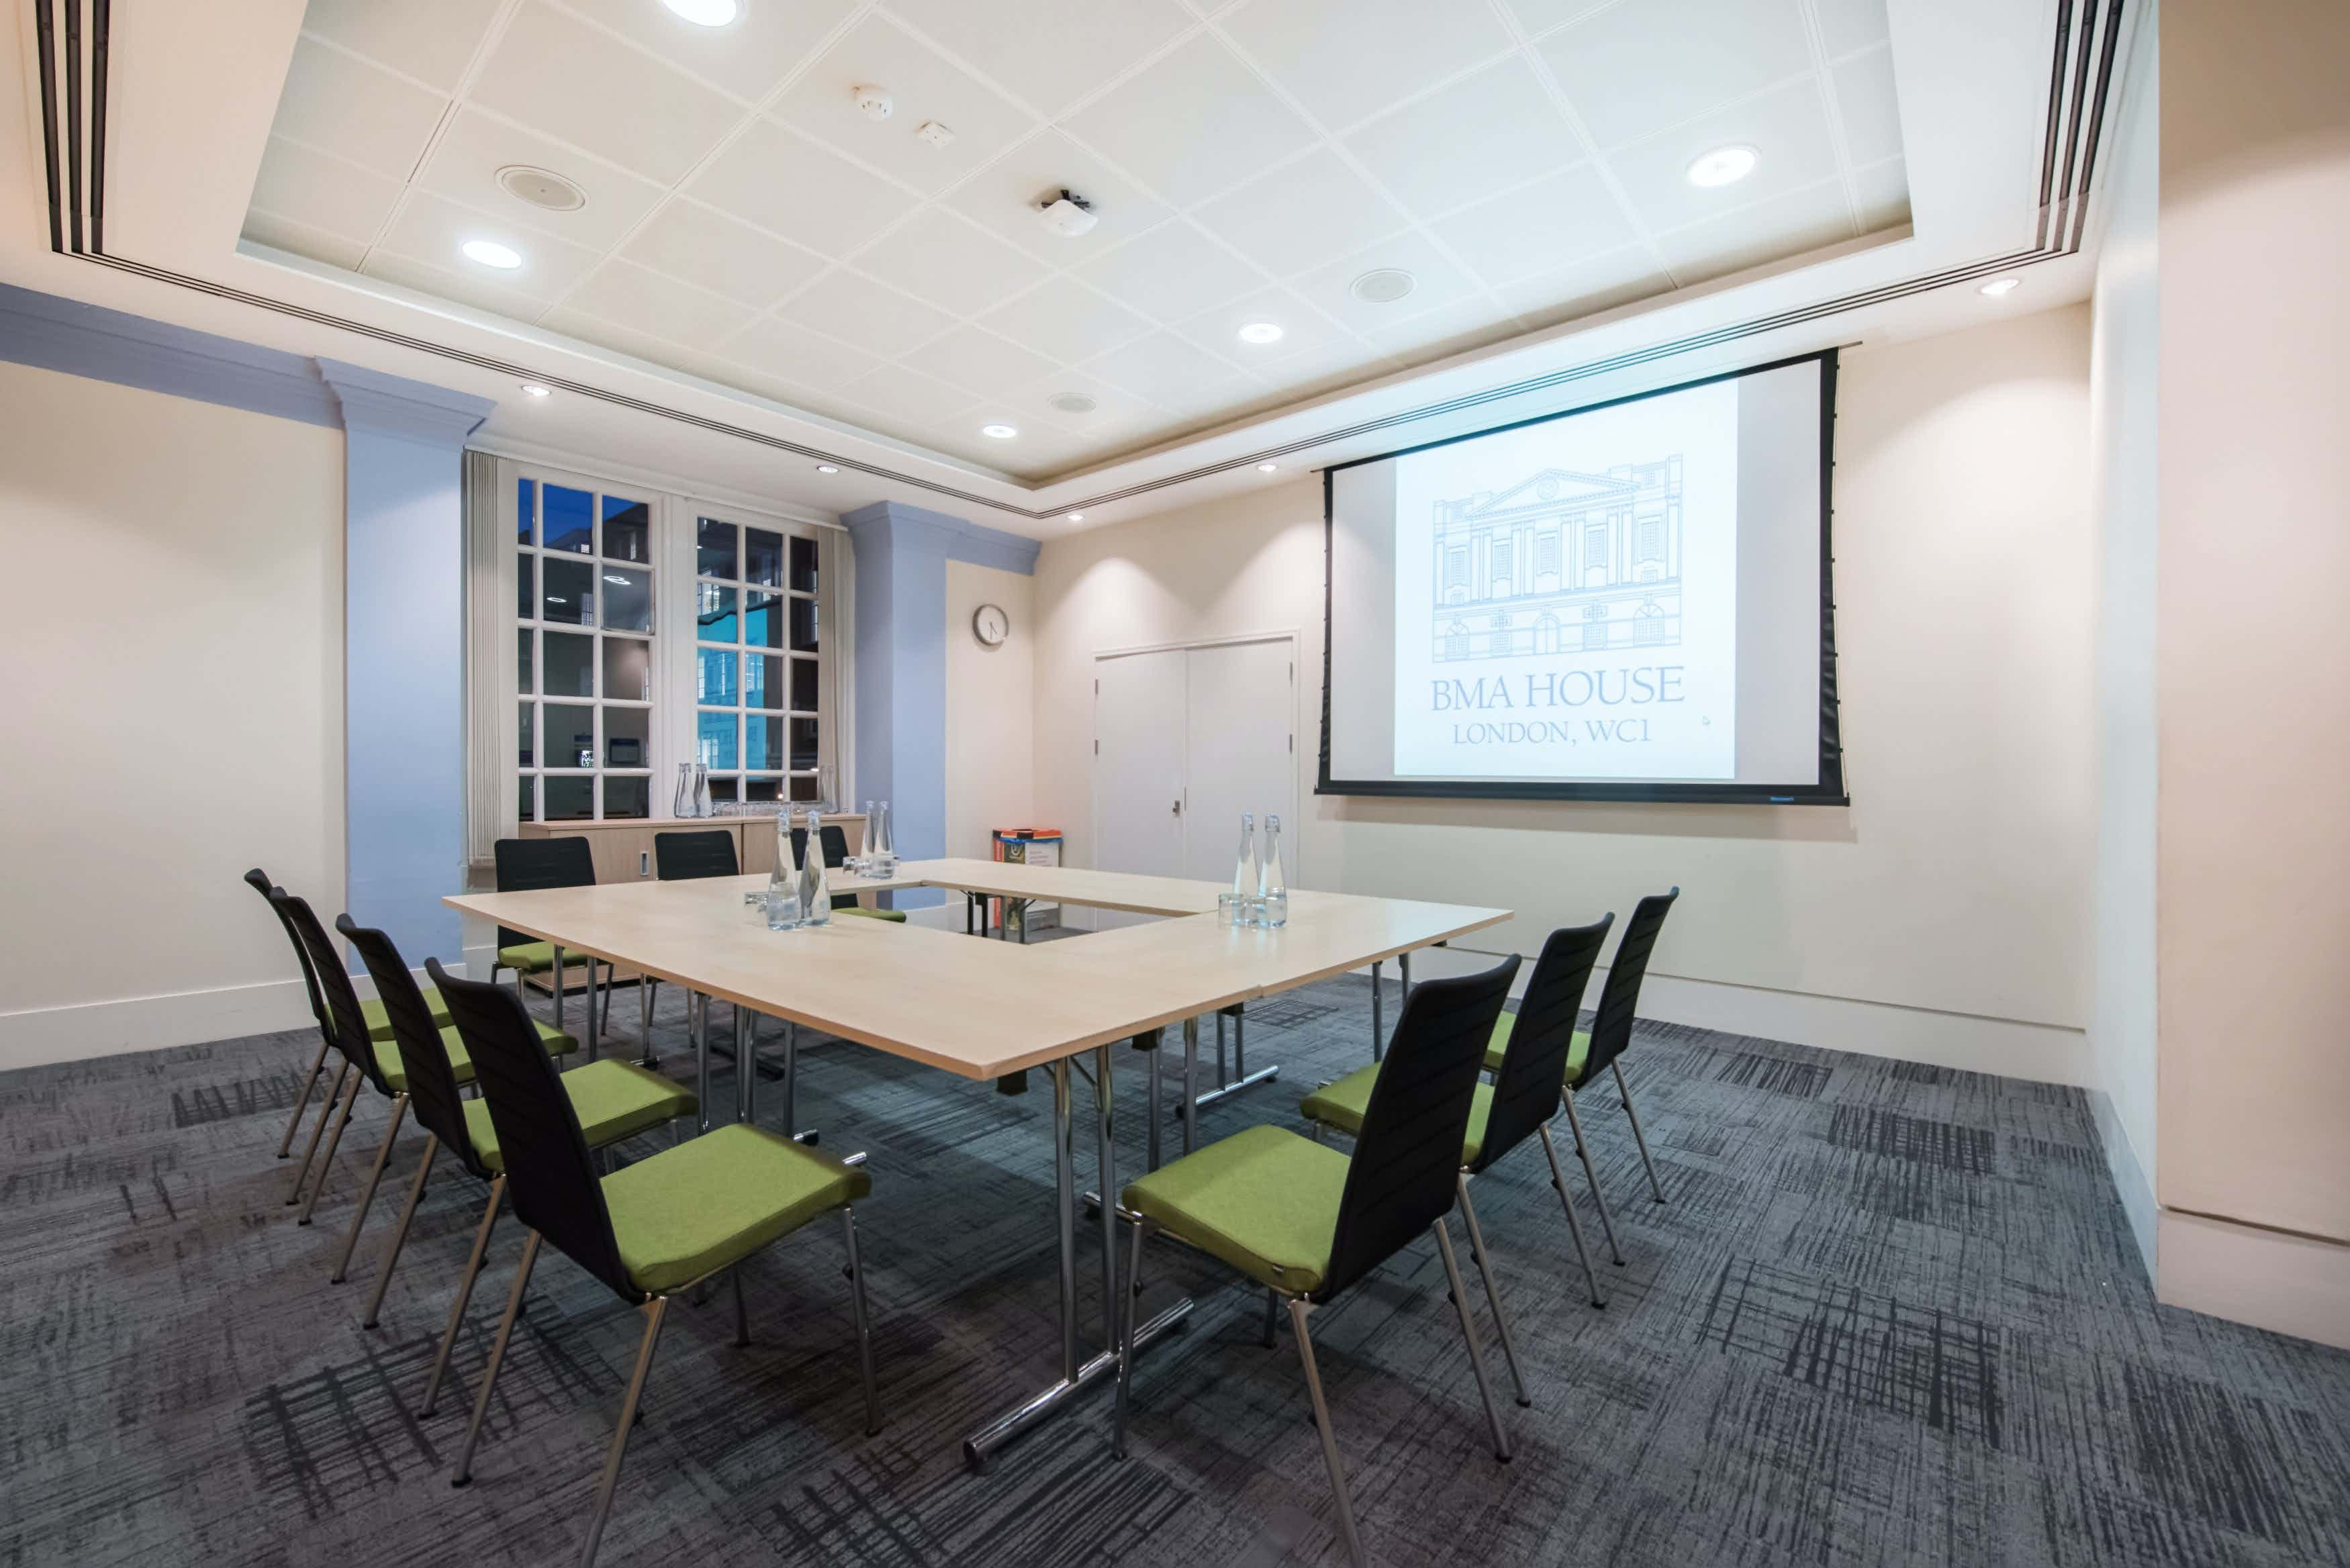 Anderson Room, BMA House